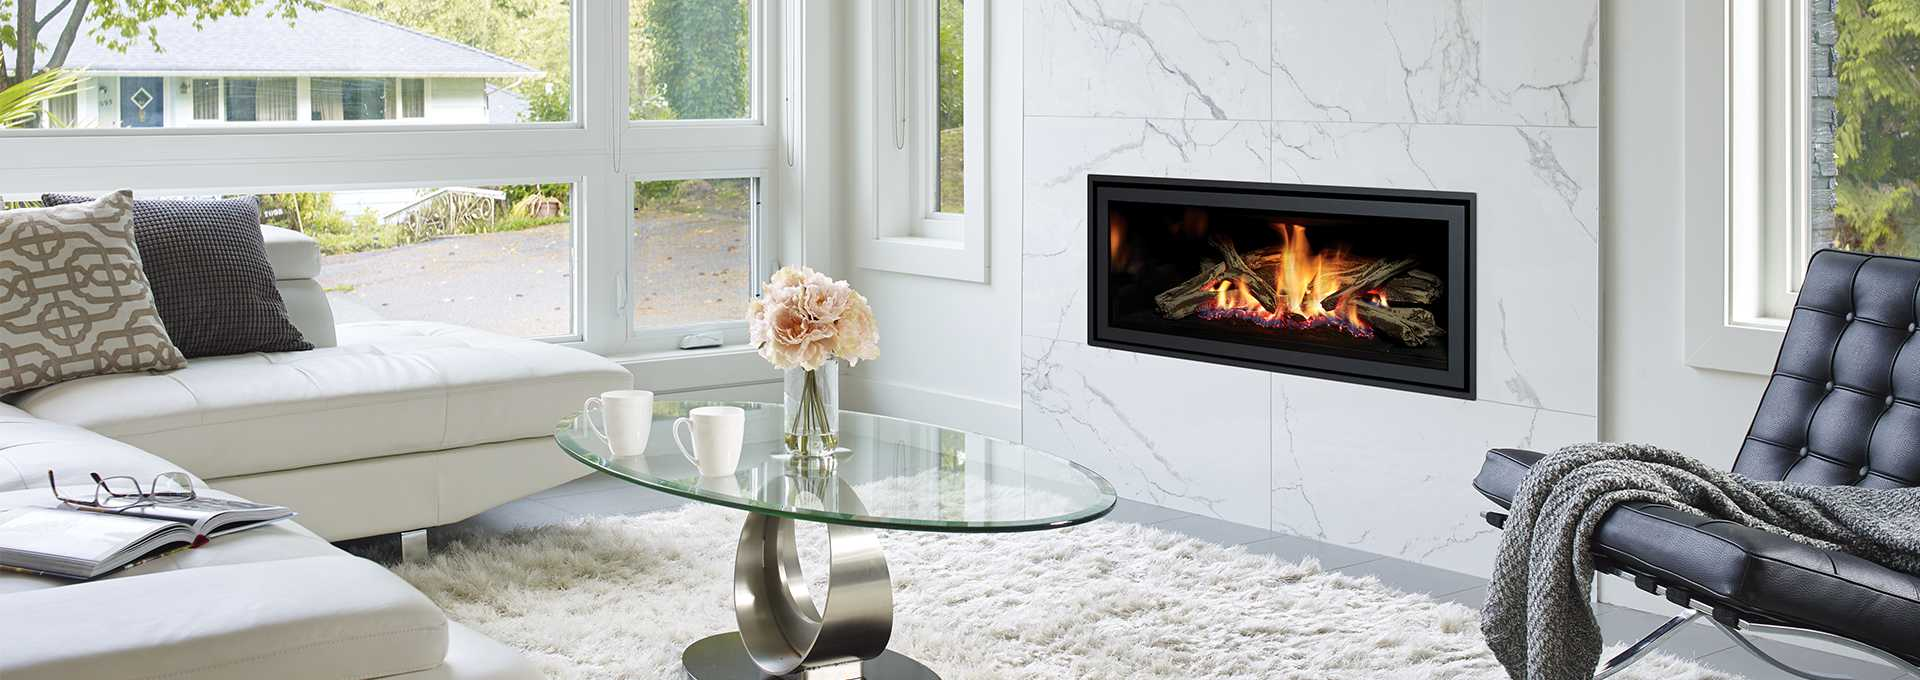 Contemporary Gas Fireplace Greenfire Gf950l Regency Fireplace